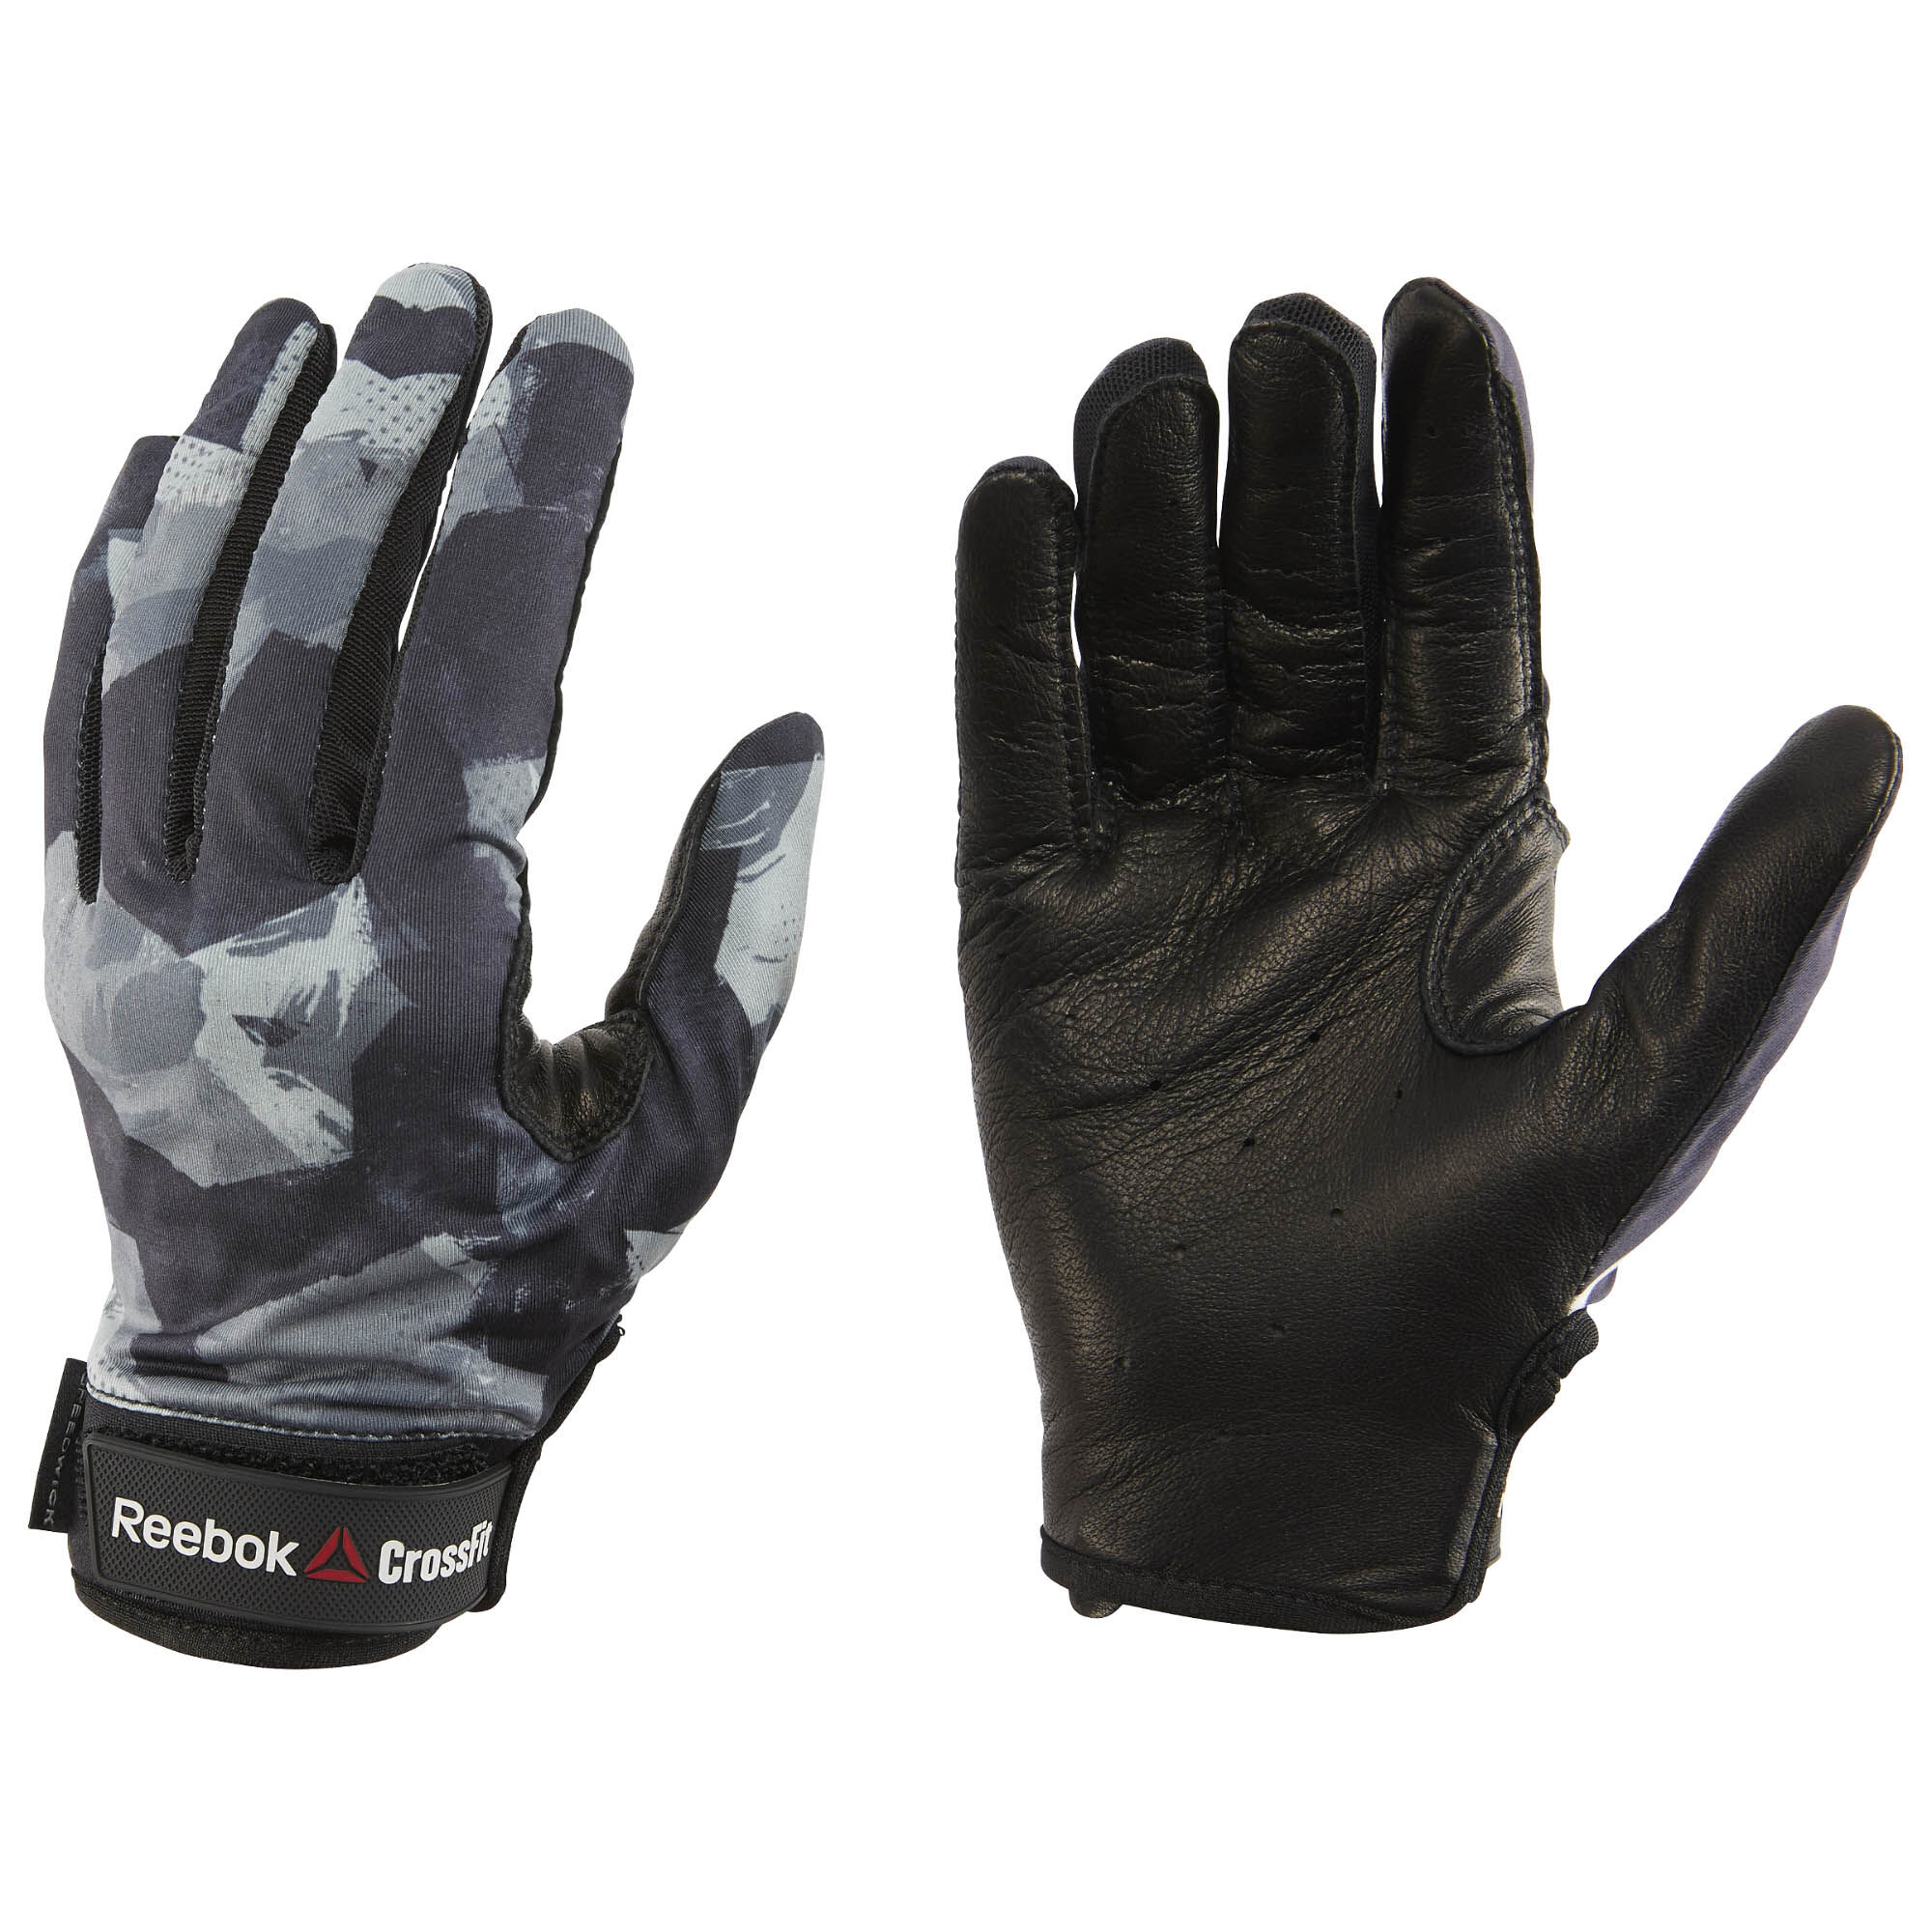 Crossfit Competition Gloves: Reebok CrossFit Mens Competition Glove - Black